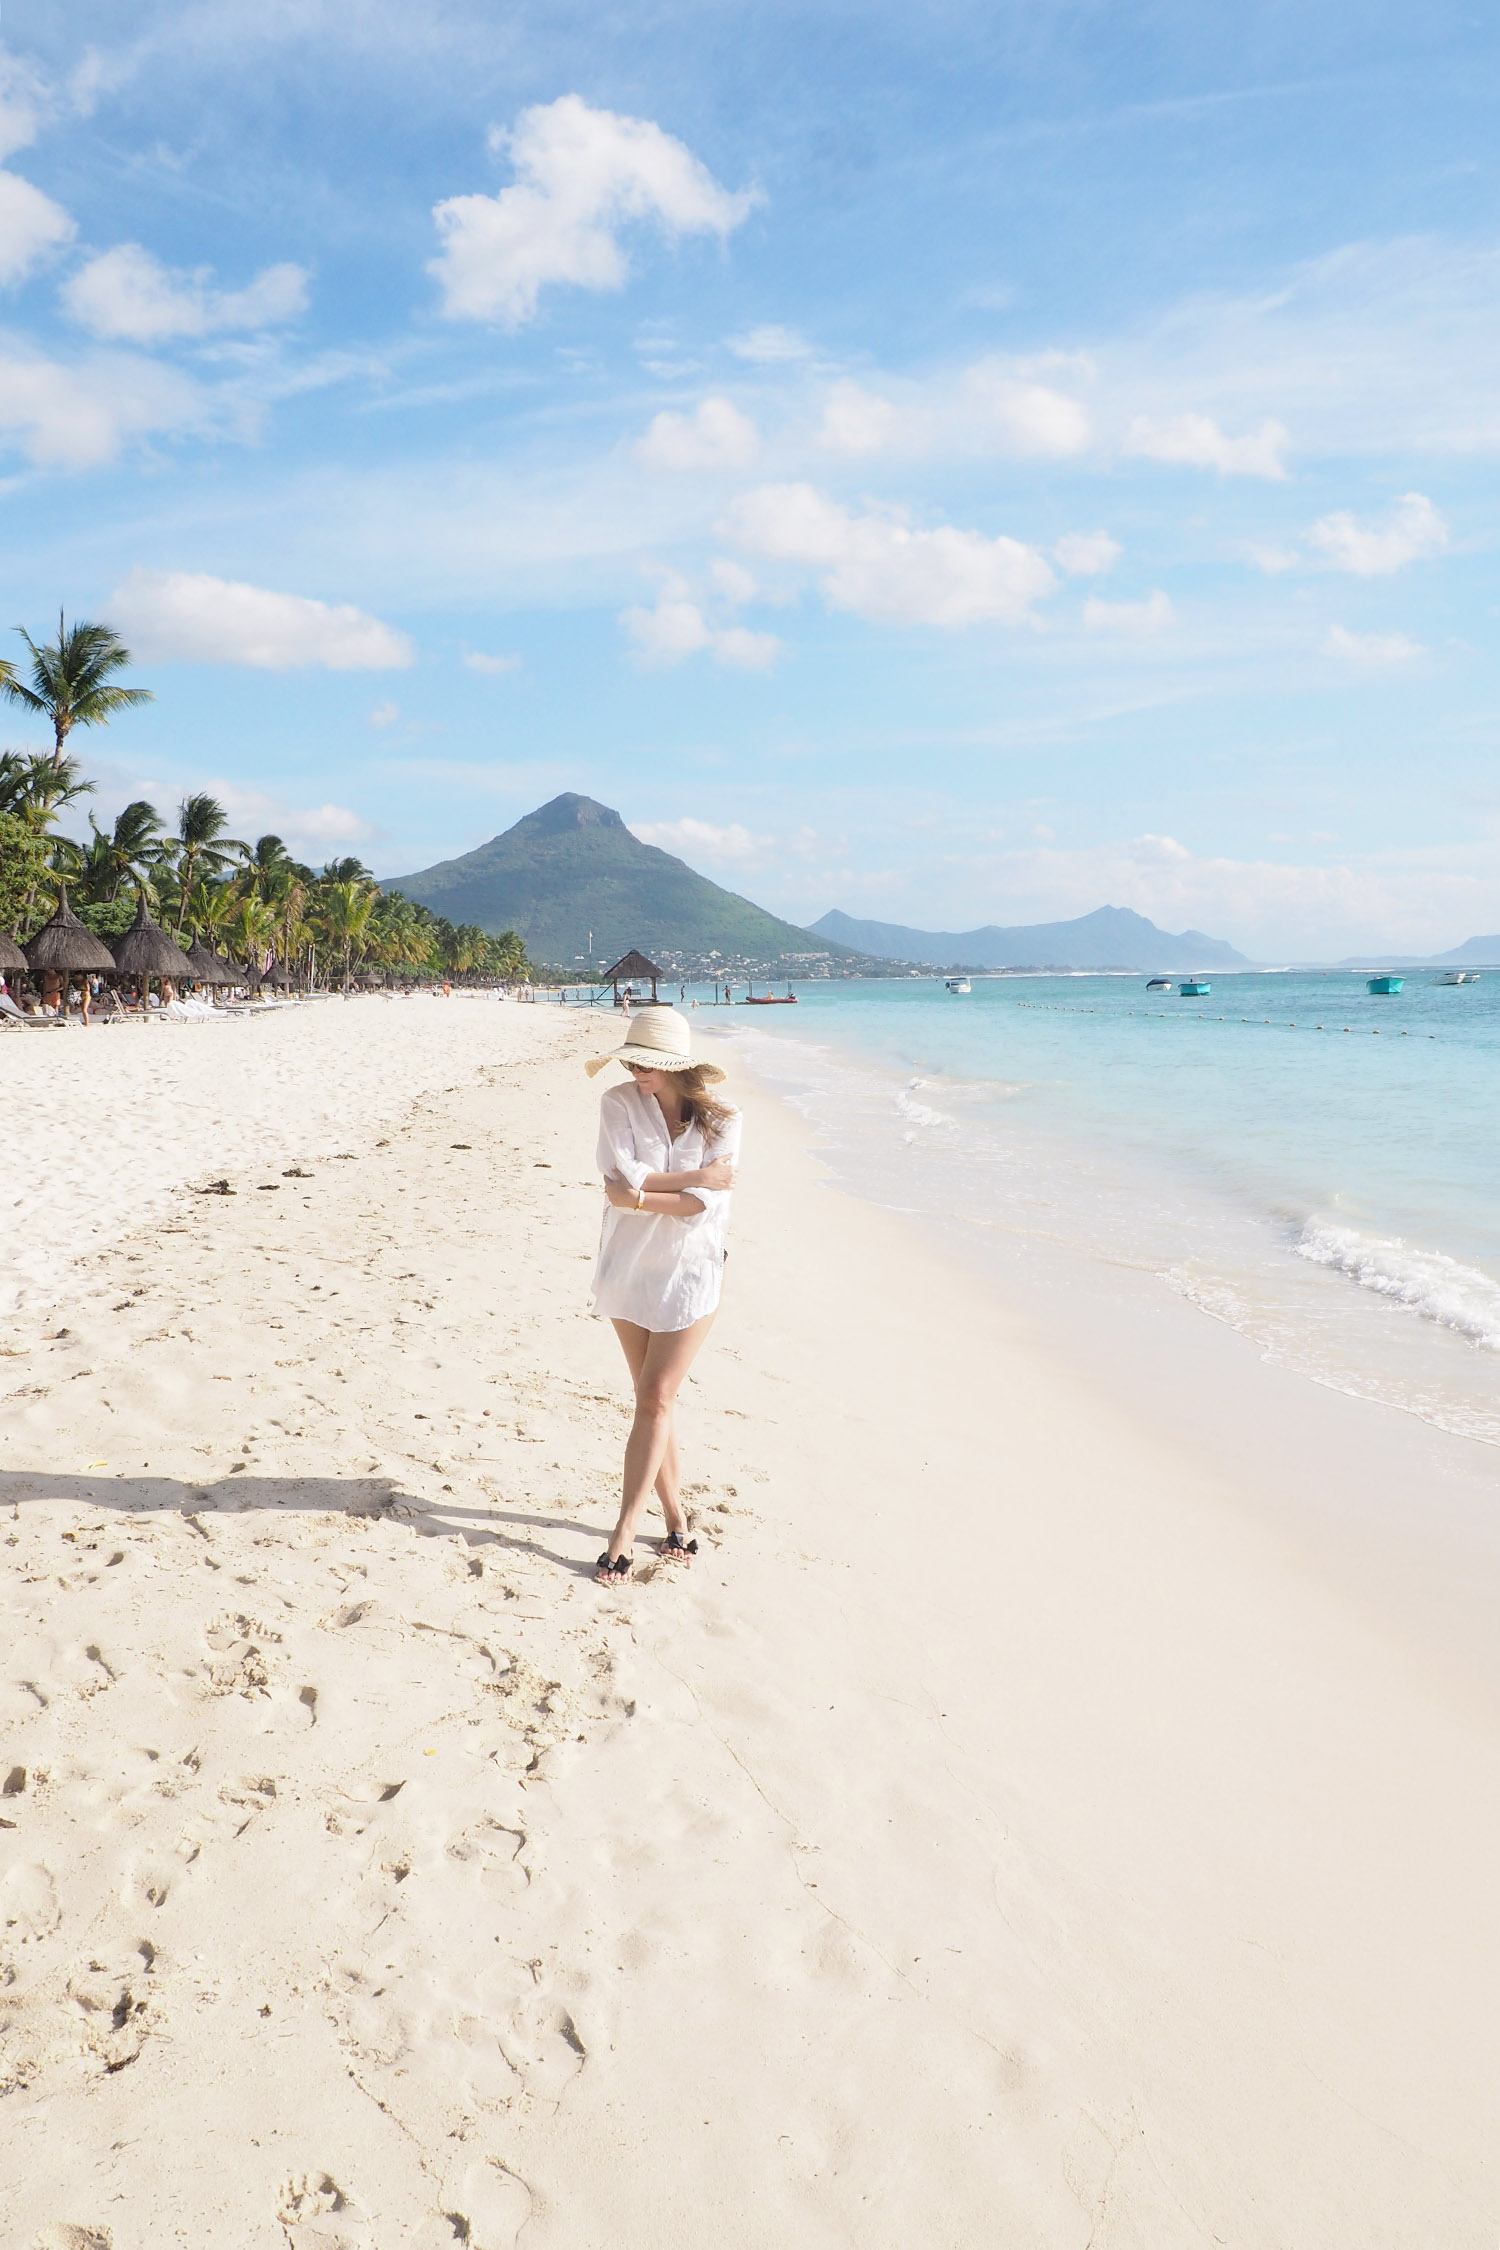 Char and the city, Mauritius, Flic en Flac beach, La Pirogue Hotel